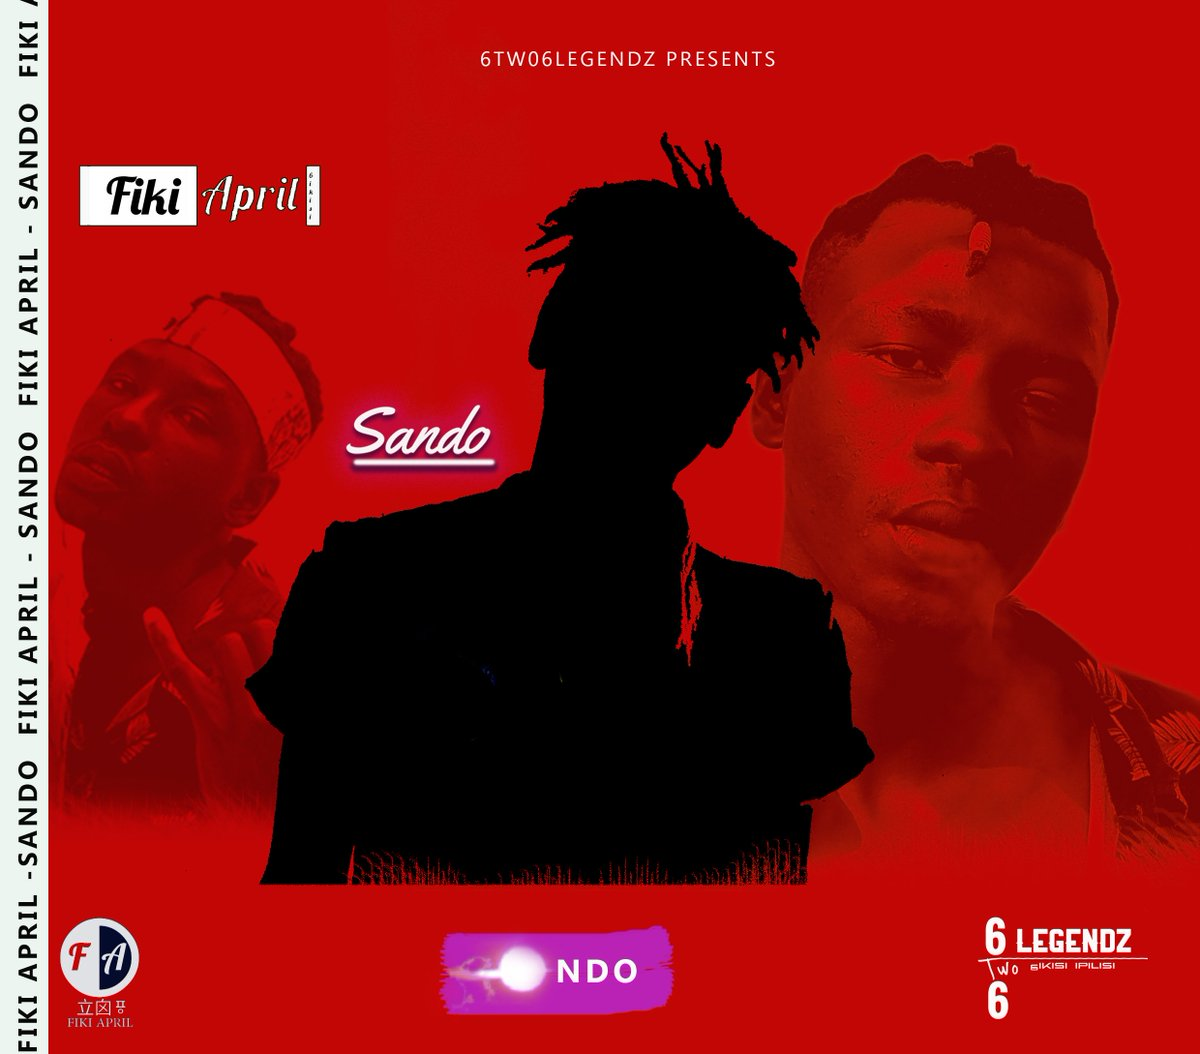 """#OfficialSandoCover I Will Be Dropping New Music🎶 And Visuals📺  Invite Your friends To My Account @Fiki25April  and also my Page Fiki April and Share With Them‼️, Go SUBSCRIBE On My YouTube Channel """"Fiki April"""" 🙏 #6ikisi👍 #6ikisiIPILISI💊 #SRL #AprilNation🐏 @6two6Legendz https://t.co/0SRtHrVe32"""